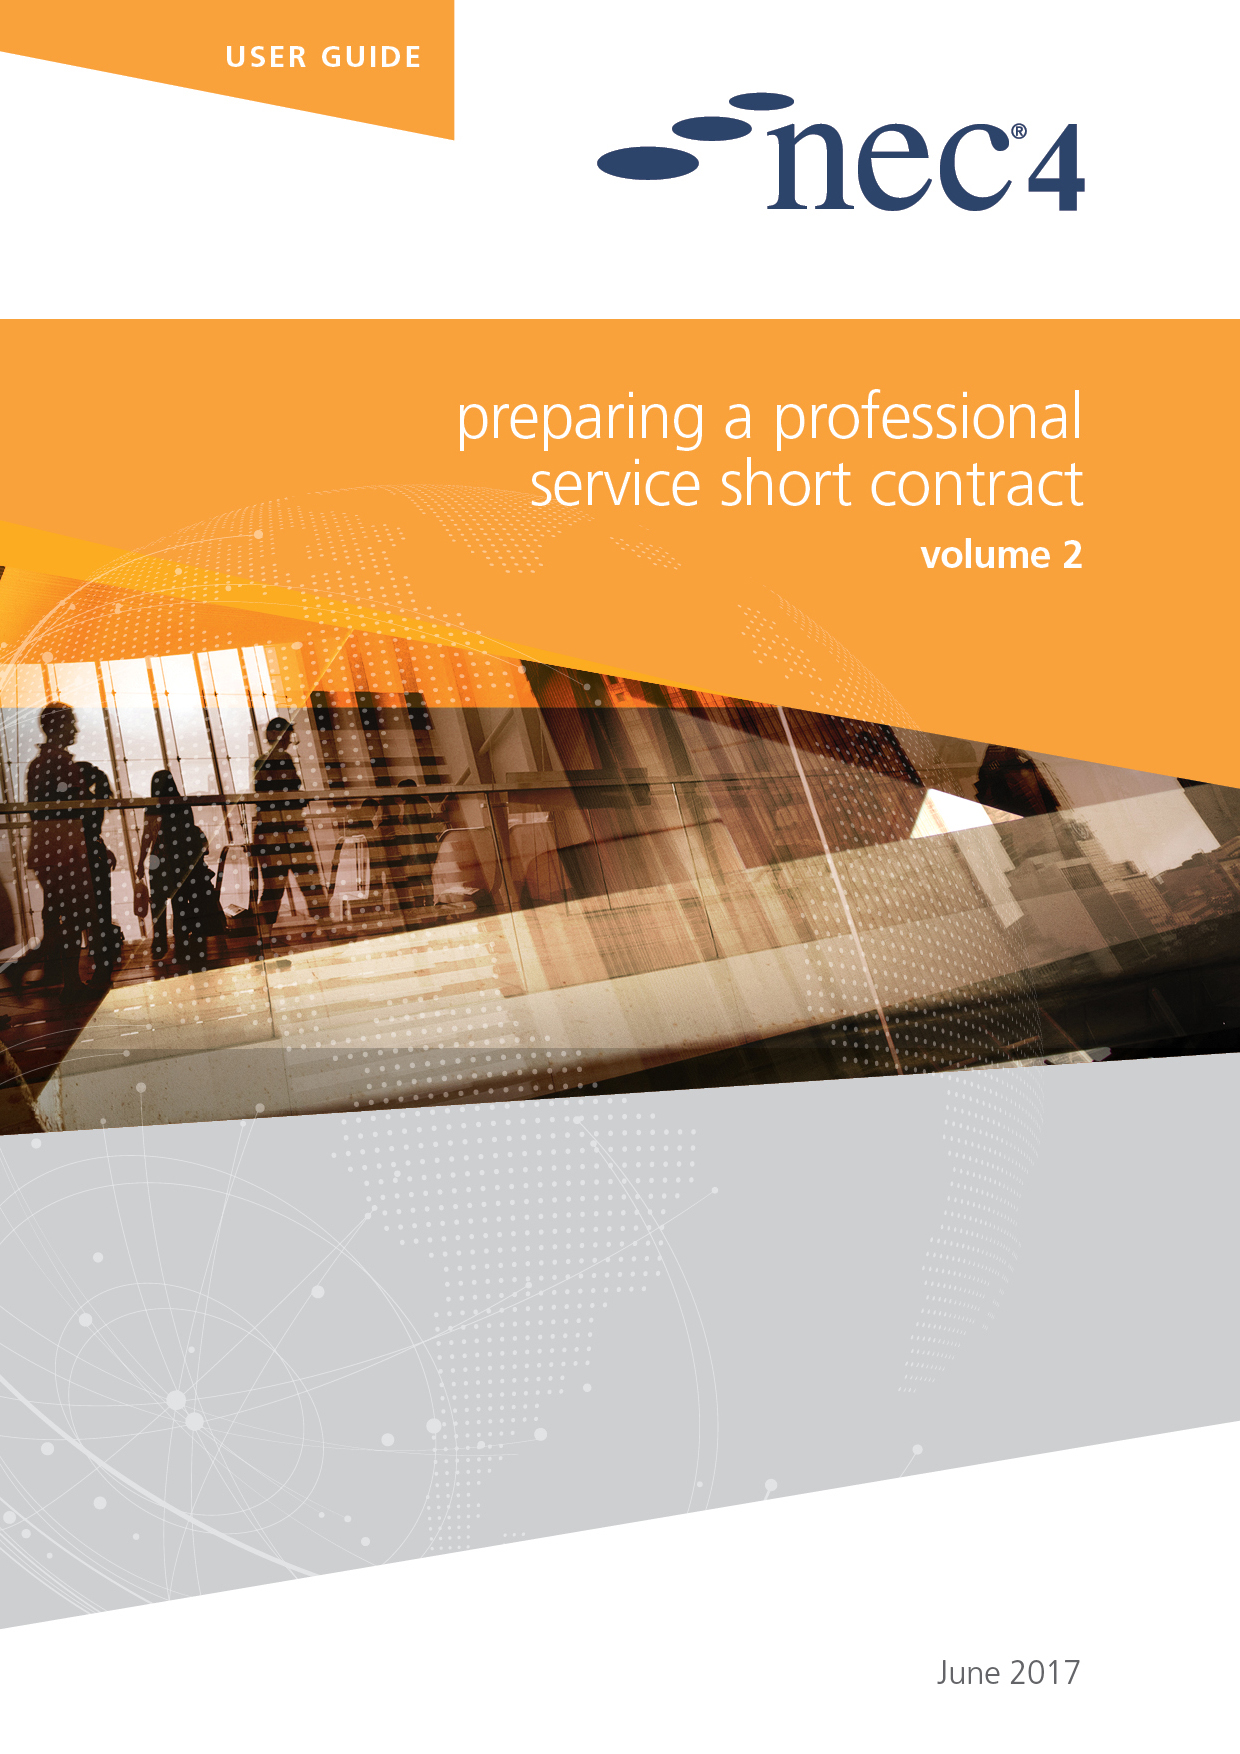 NEC4: Preparing a Professional Service Short Contract